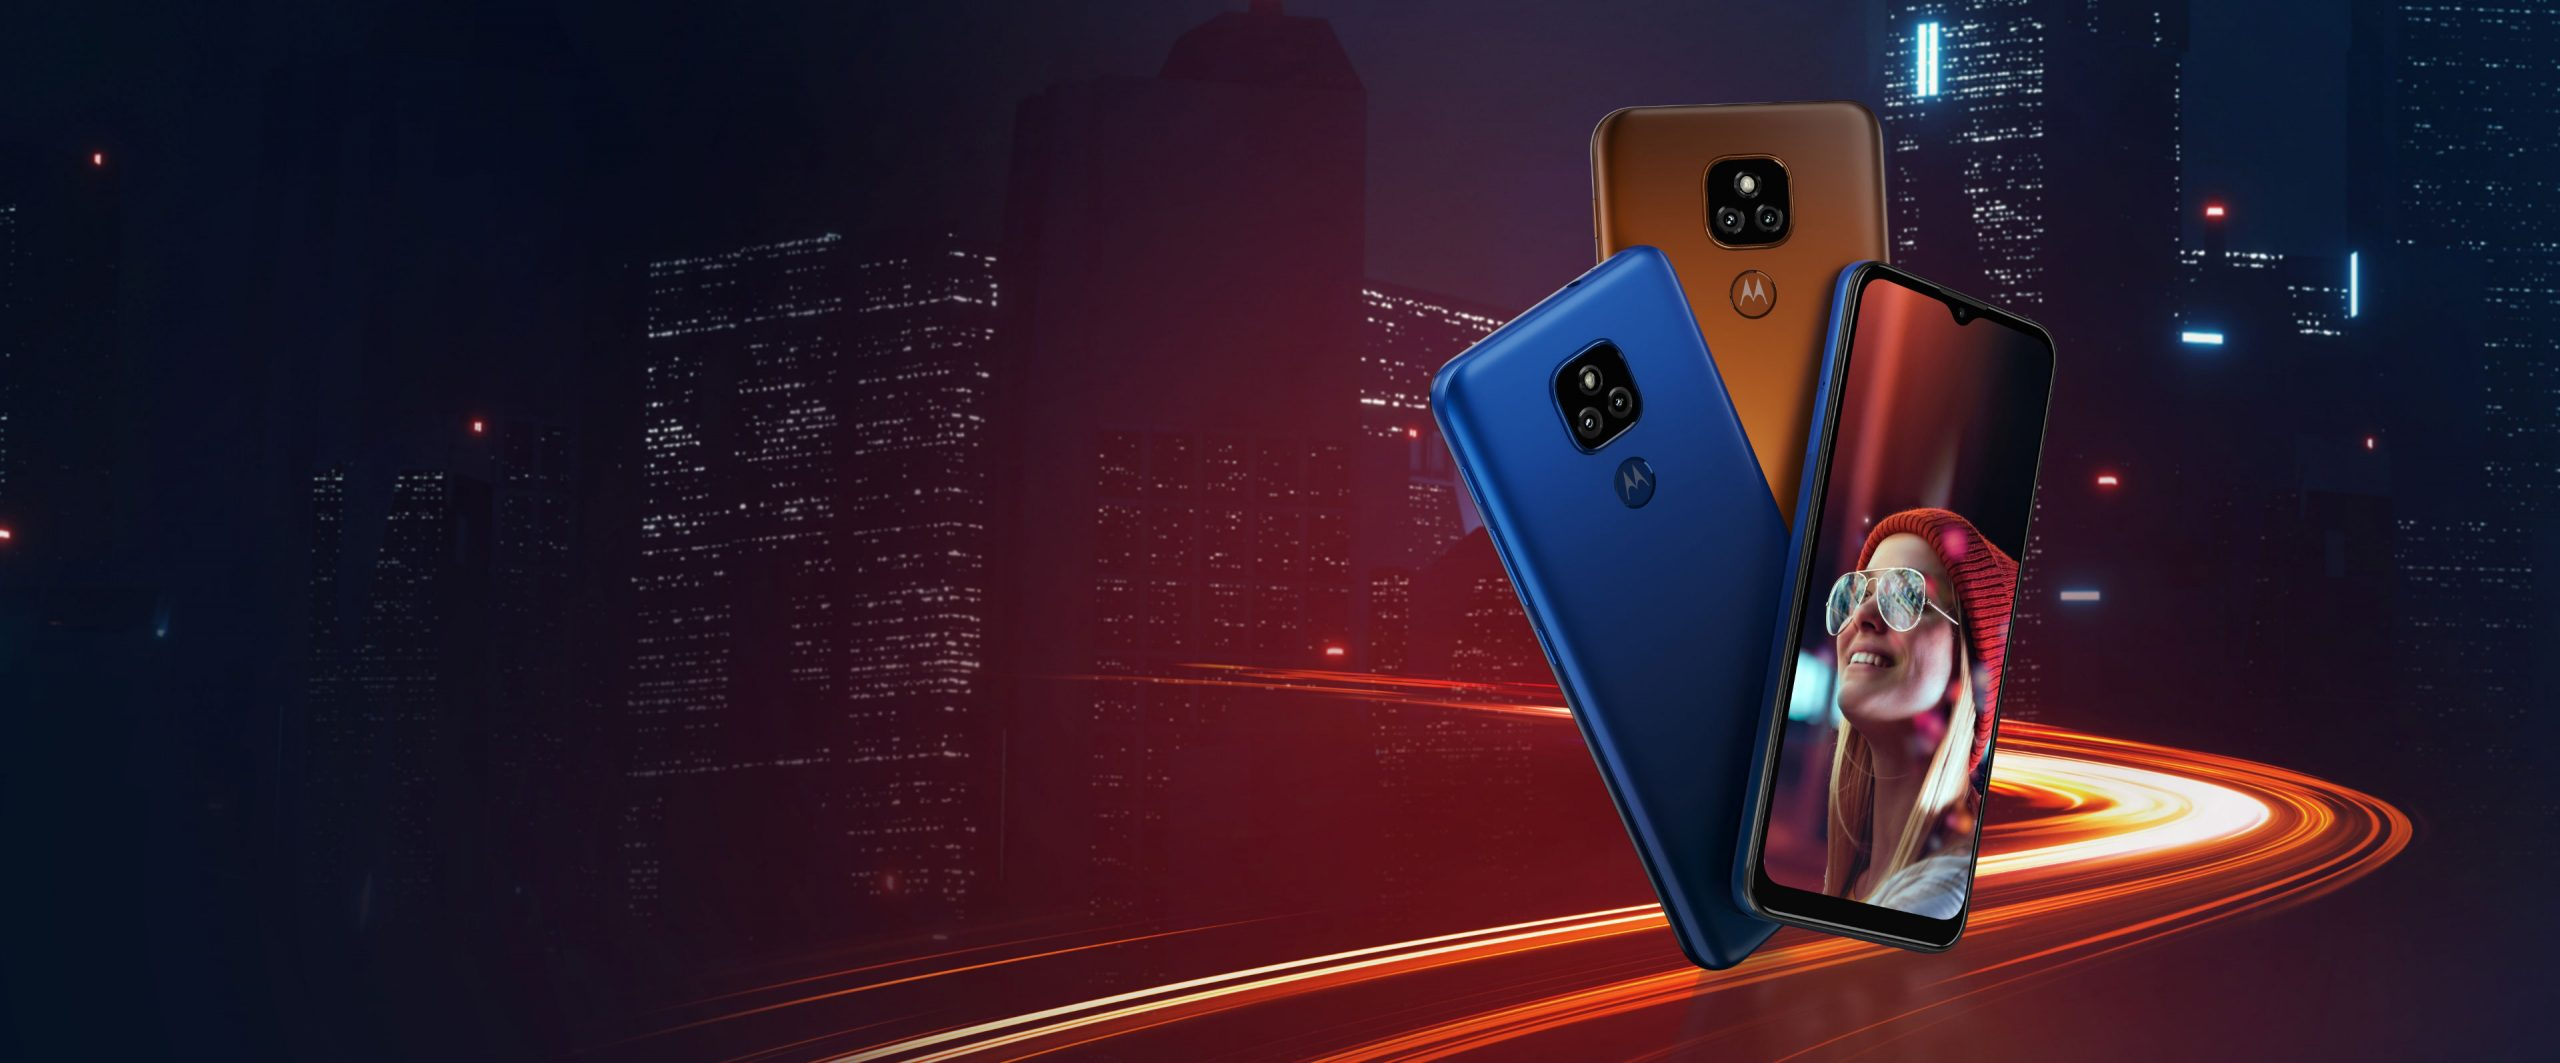 Moto E7 Plus Launched at a Price of Rs 9,499 in India